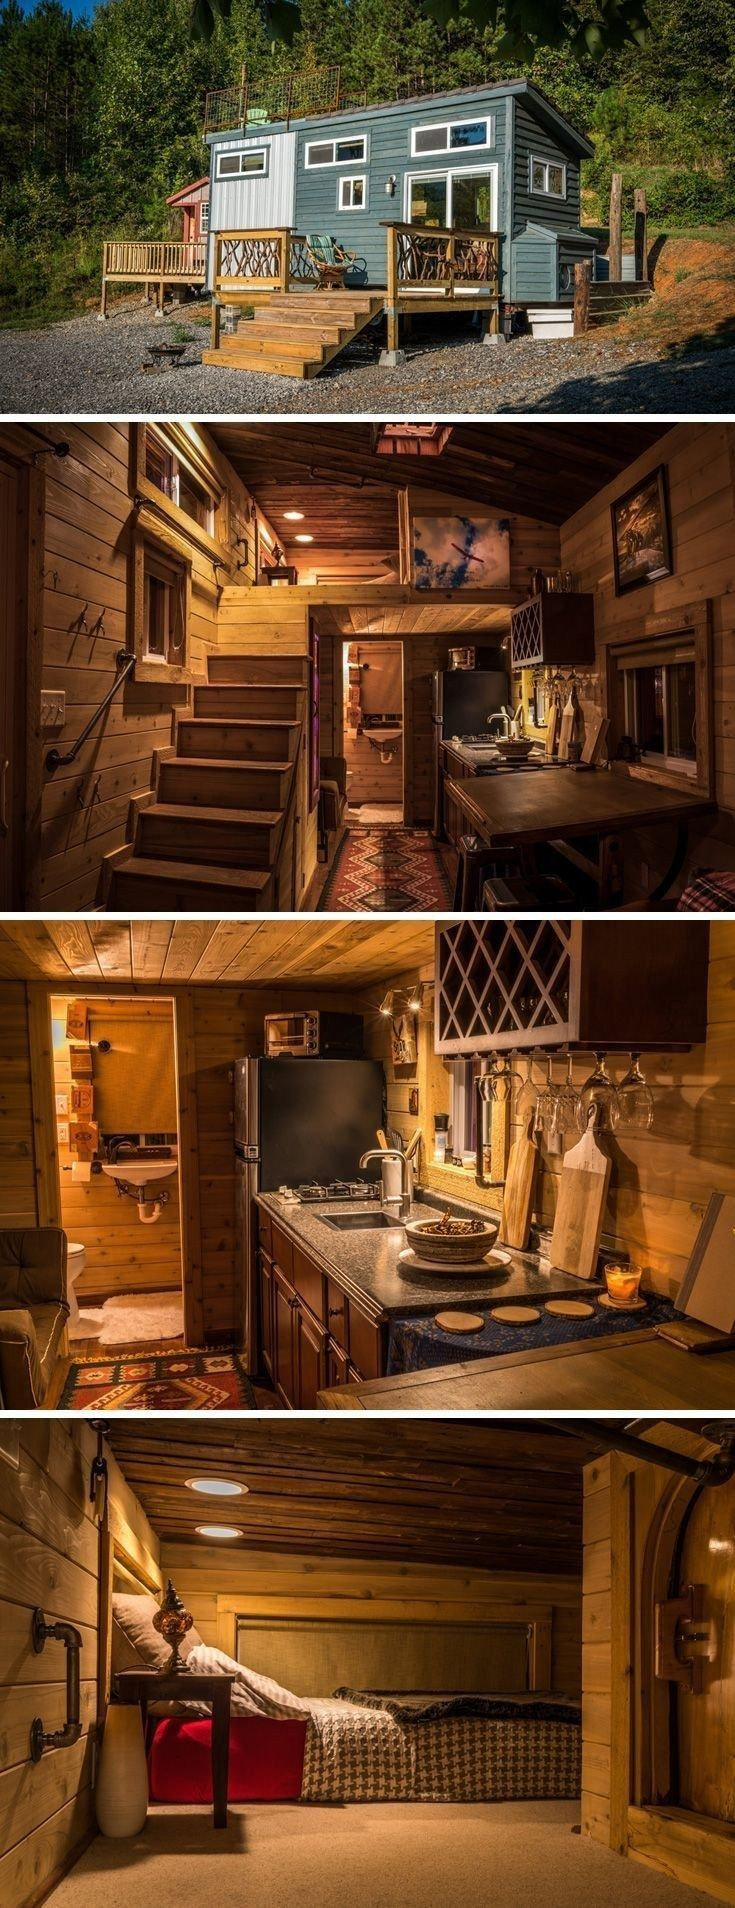 46 Wonderful Rustic Tiny House Design Ideas That You Need to Have | Justaddblog….